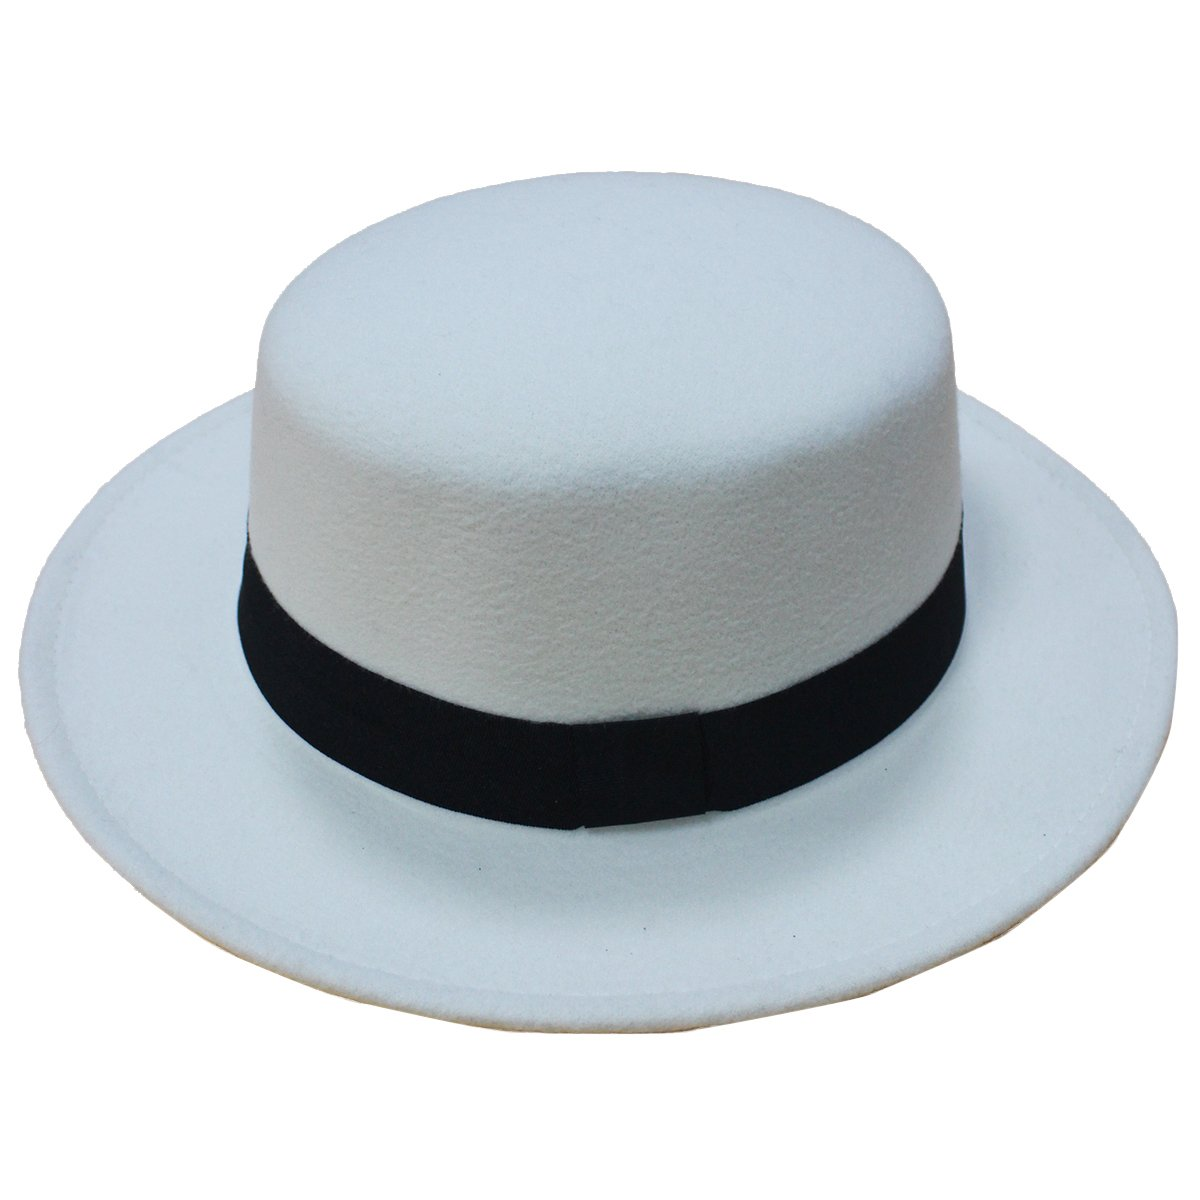 NE Norboe Norboe Women's Brim Fedora Wool Flat Top Hat Church Derby Bowknot Cap (White)